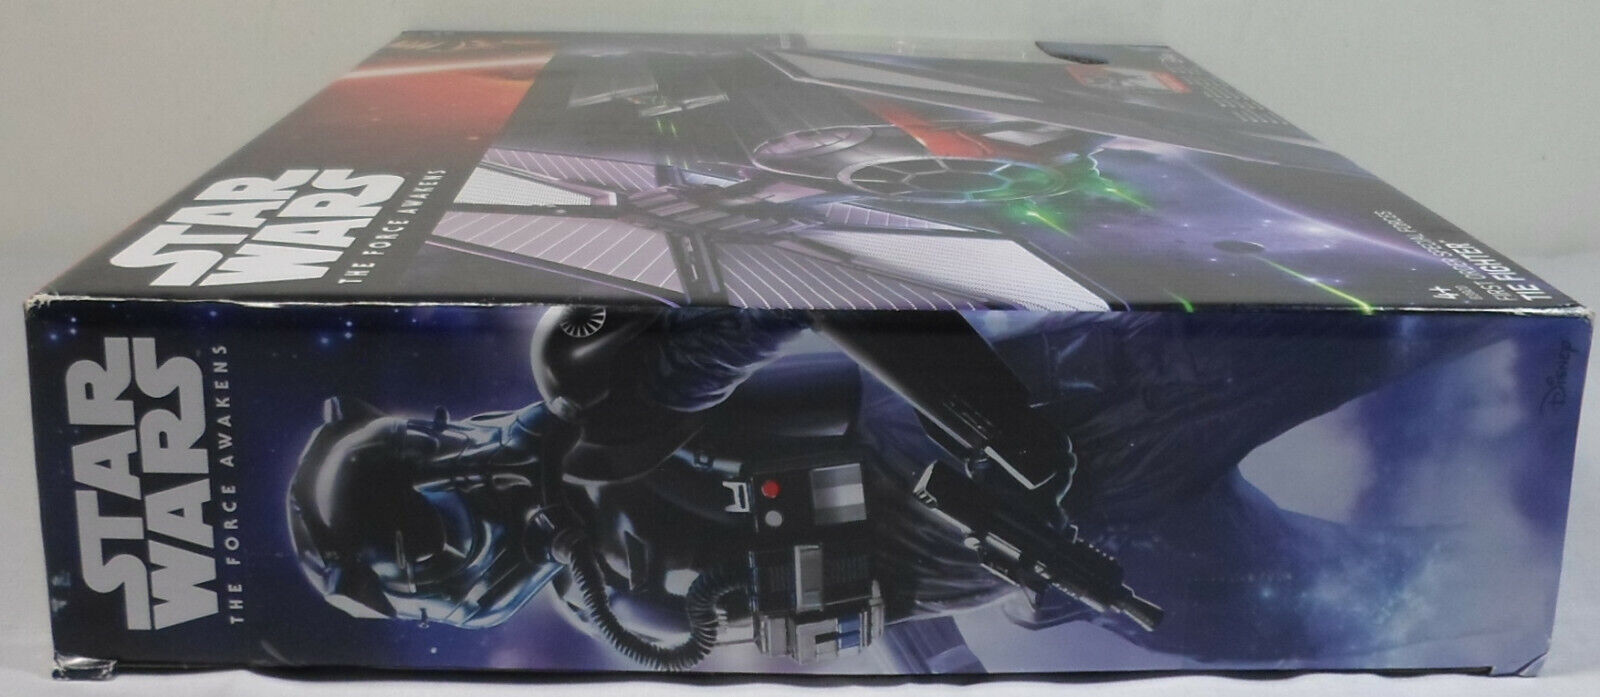 STAR WARS 2015 THE FORCE AWAKENS FIRST ORDER SPECIAL SPECIAL SPECIAL FORCES TIE FIGHTER MISB NEW dffc8d